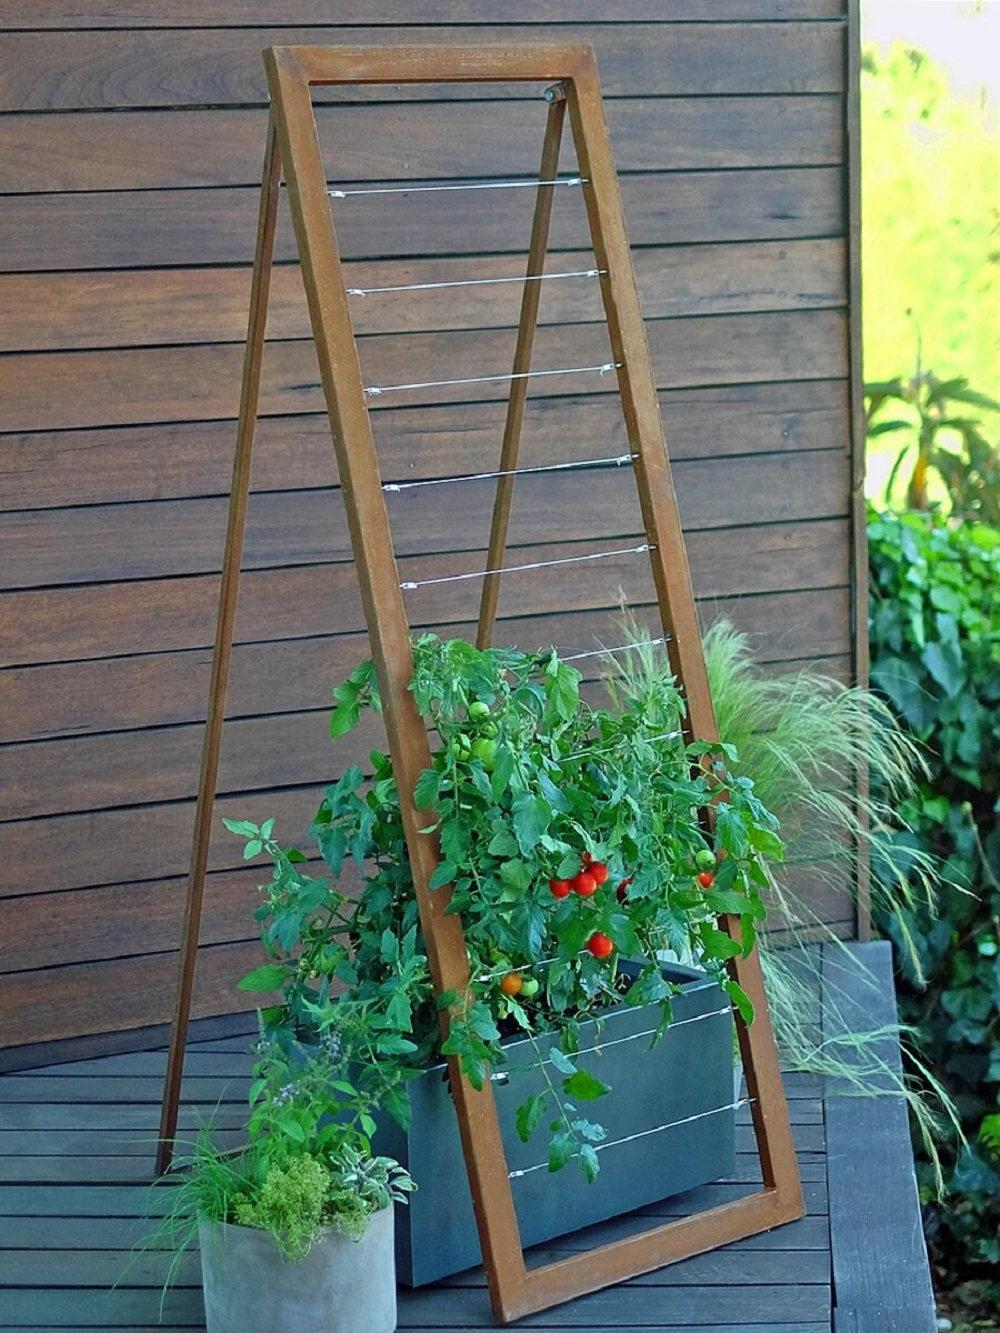 deck_modern_tomato_trellis_Mira_garden-1-1 Ideas for garden guards that are inexpensive and look great